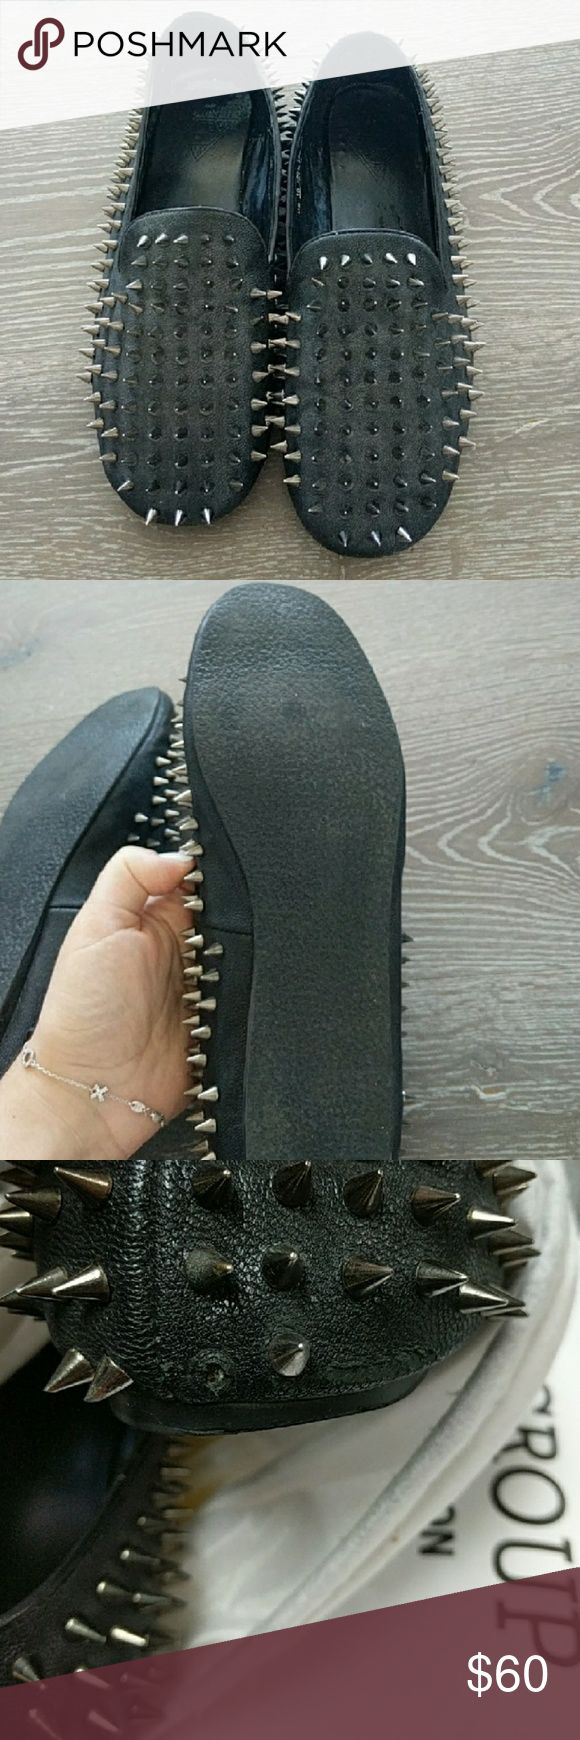 UNIF Hellraisers Overall great, used condition. No stains or odors. Unif Hellraisers in a Womens  size 10.  Small wear/rub marks on the lower back and missing 1 spike.  Black leather with silver spikes.  Please feel free to ask any questions you may have. UNIF Shoes Flats & Loafers